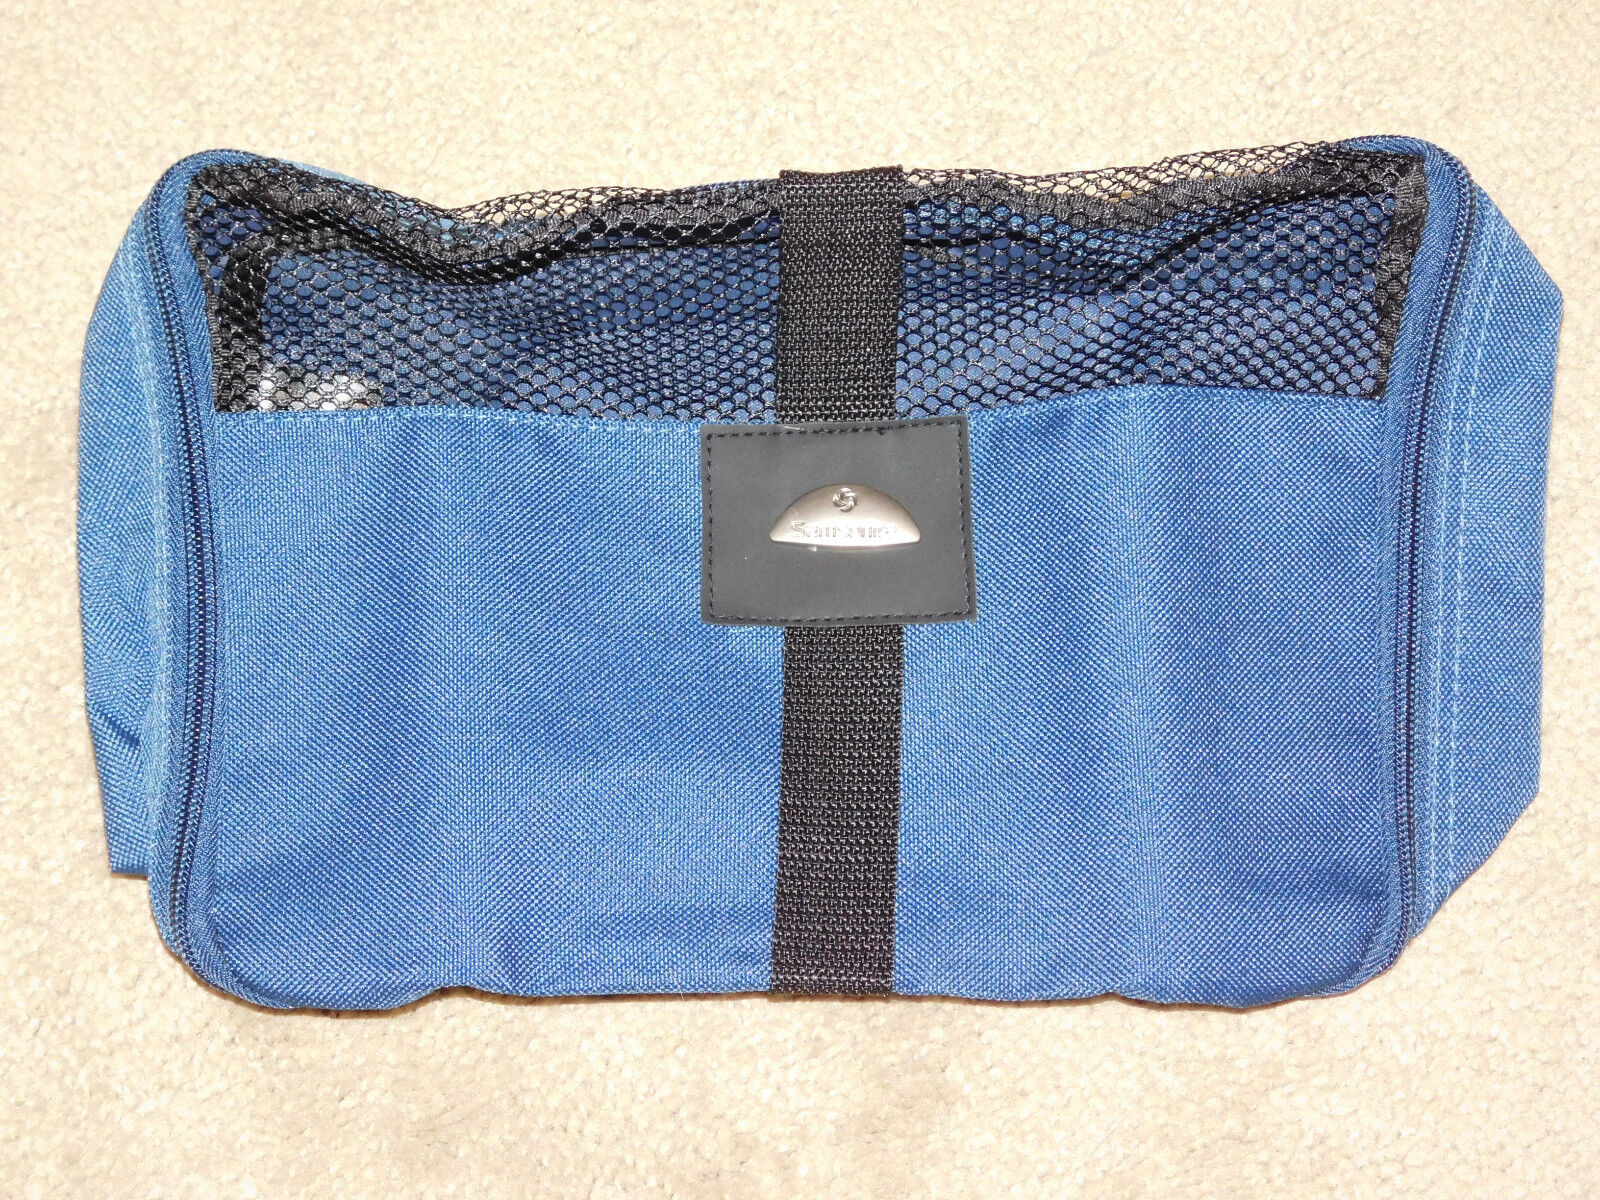 SAMSONITE NAVY BLUE CANVAS TOILETRY / TRAVEL BAG